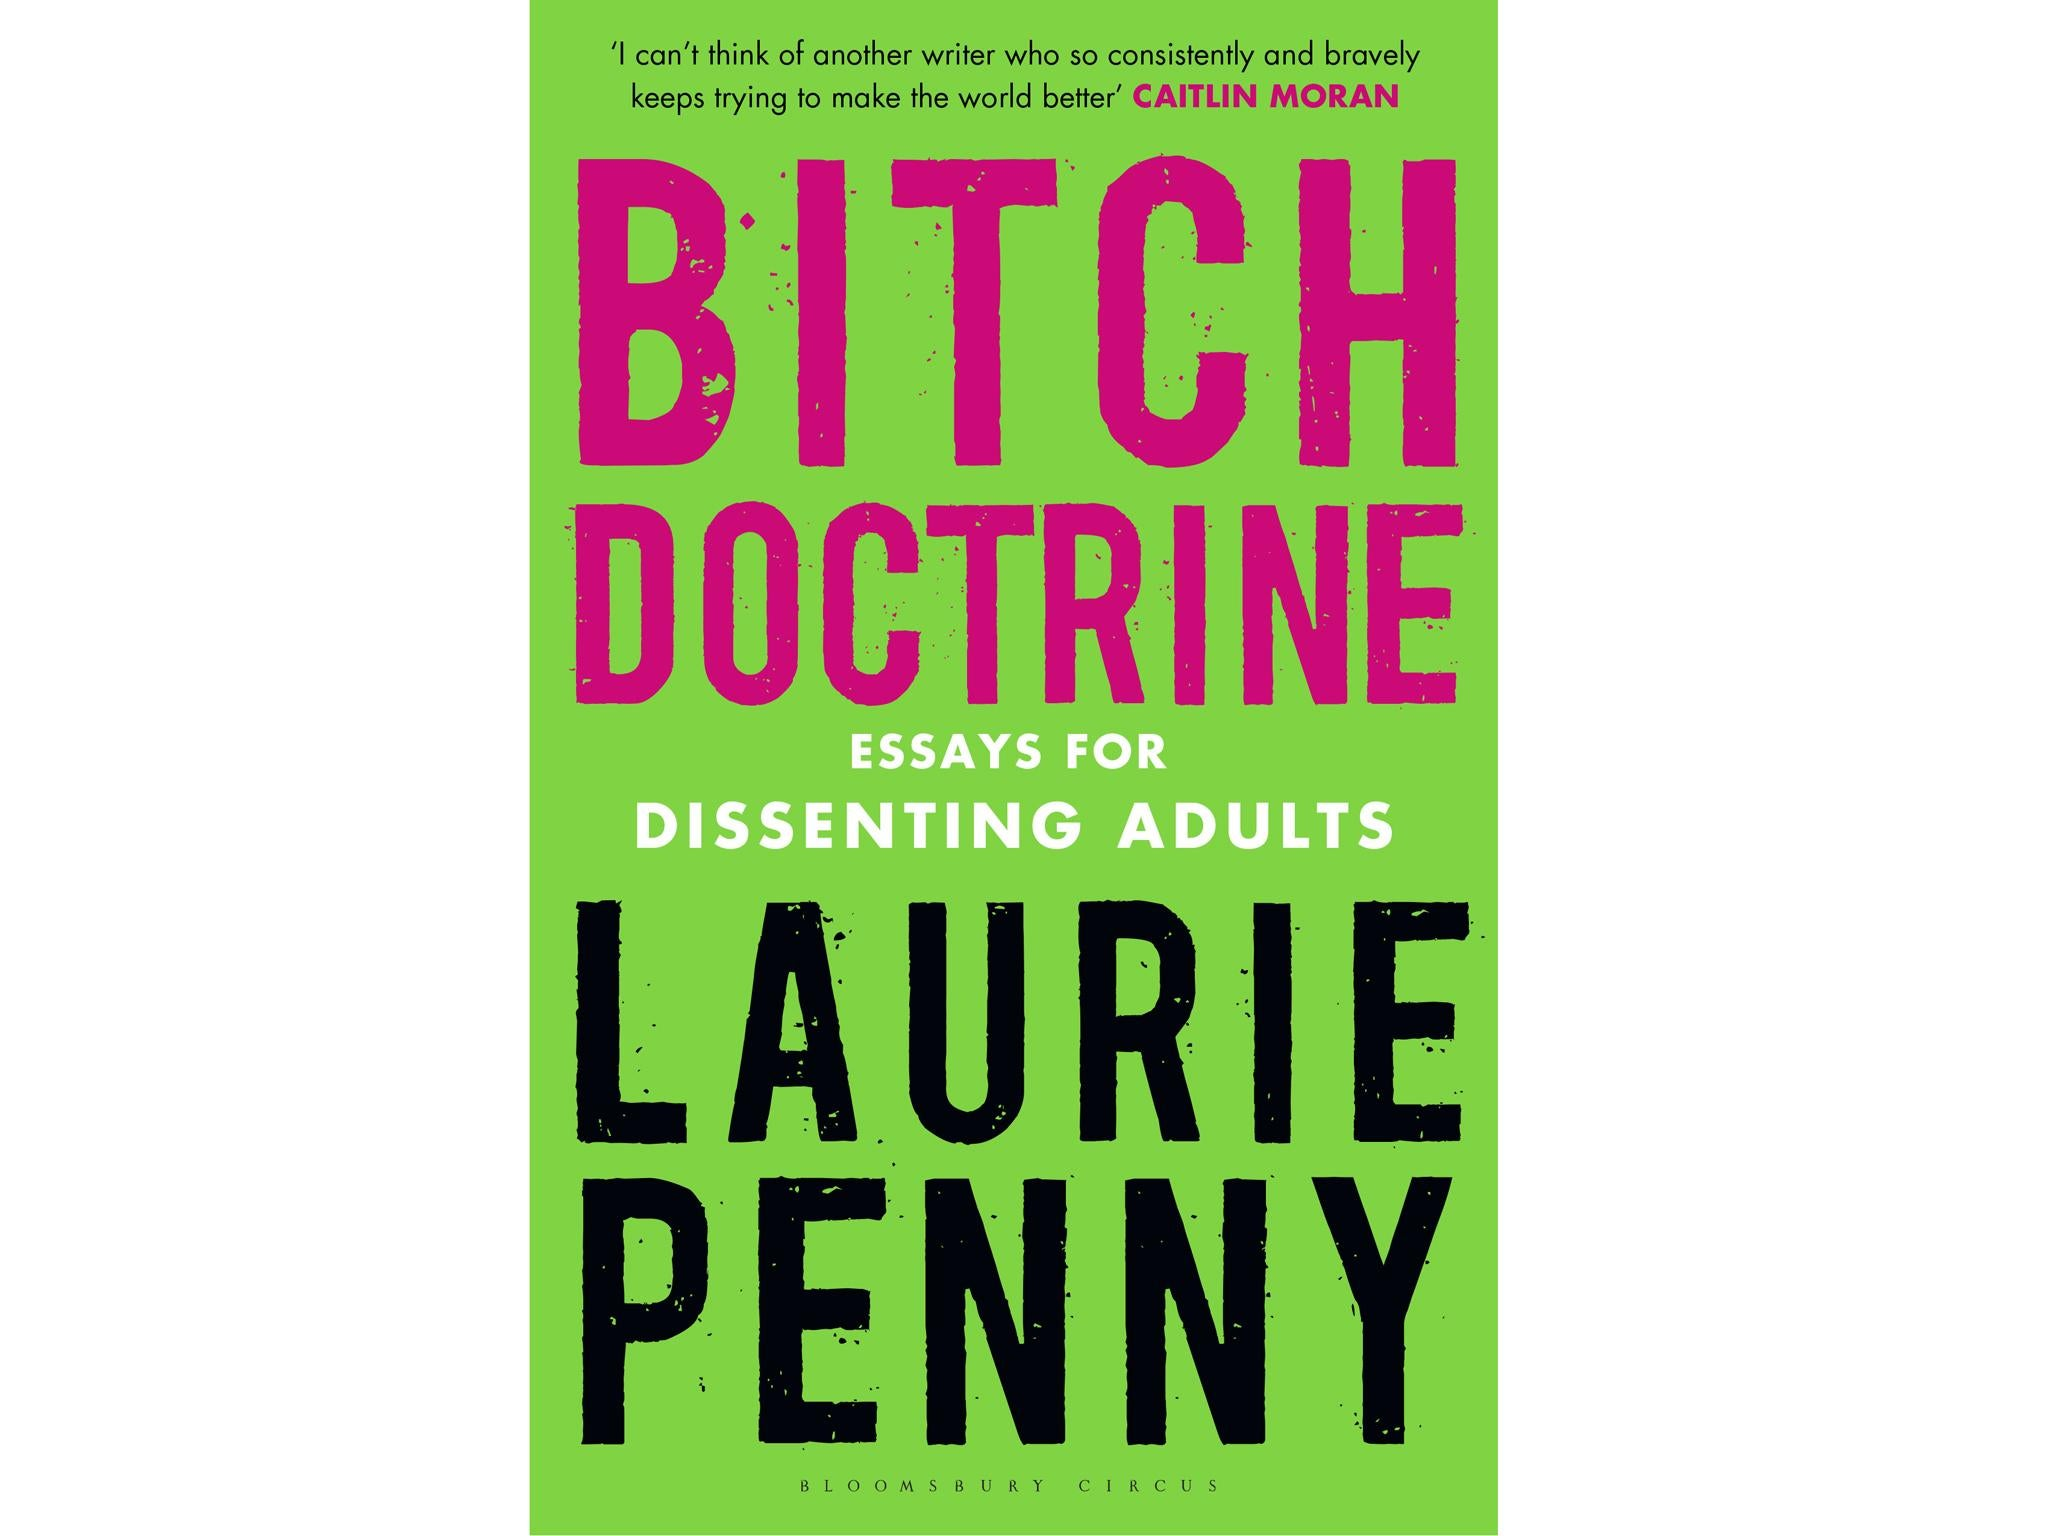 10 best new non-fiction feminist books | The Independent